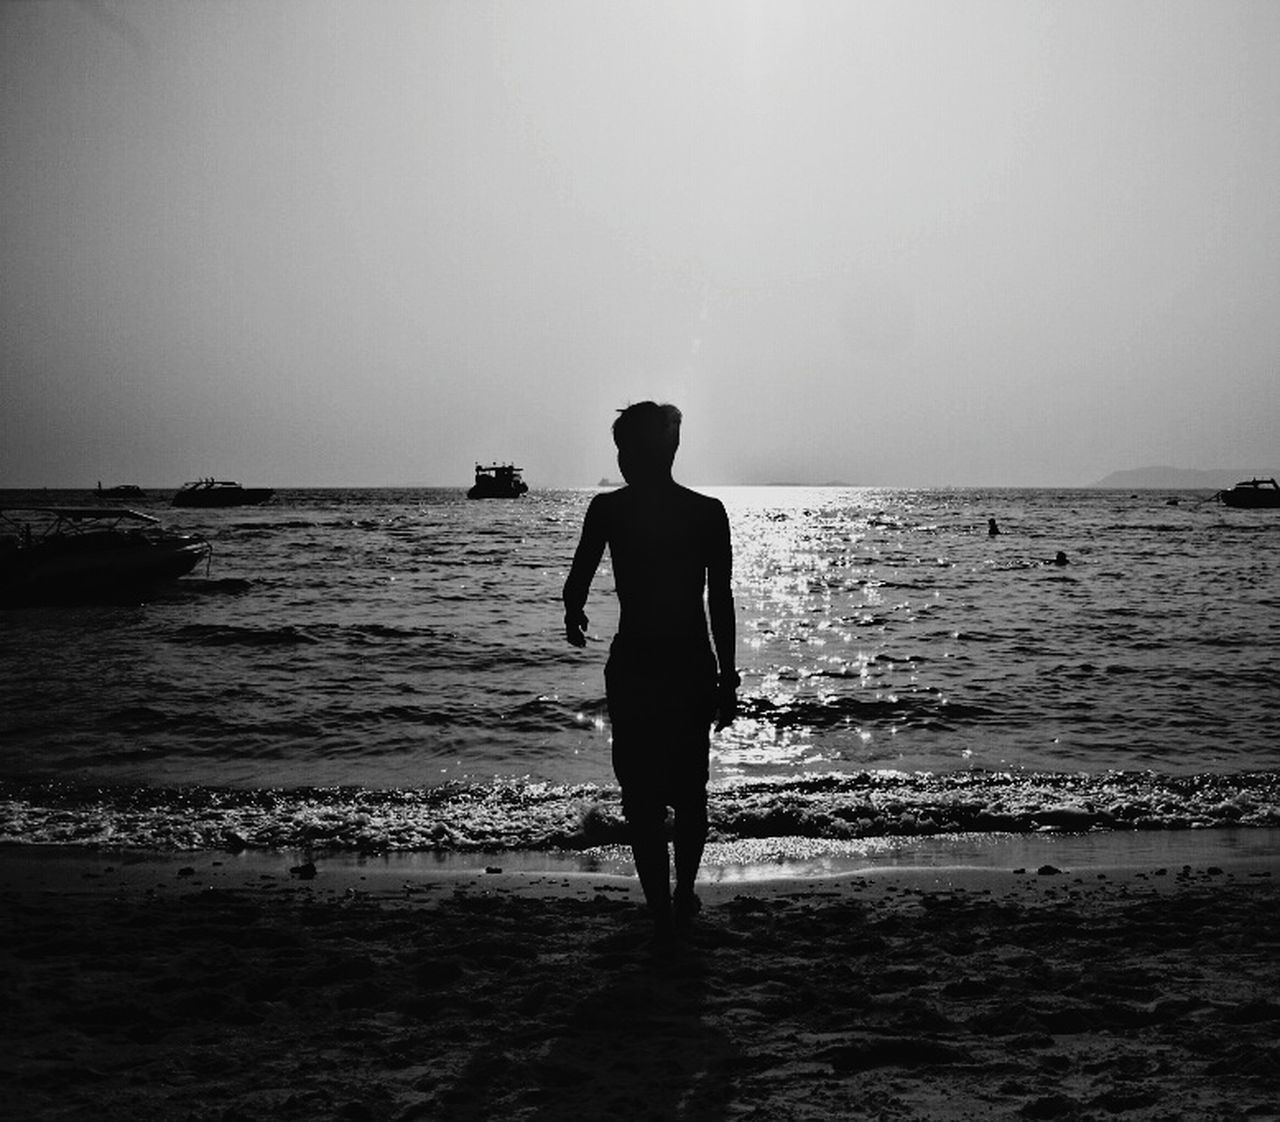 Alone Not Happy Notlove It's Me Sea Beach Horizon Over Water Rear View Silhouette Full Length Vacations Water One Person Sky People Adult One Man Only Walking Travel Destinations Nature Only Men Sunset Standing Tranquility